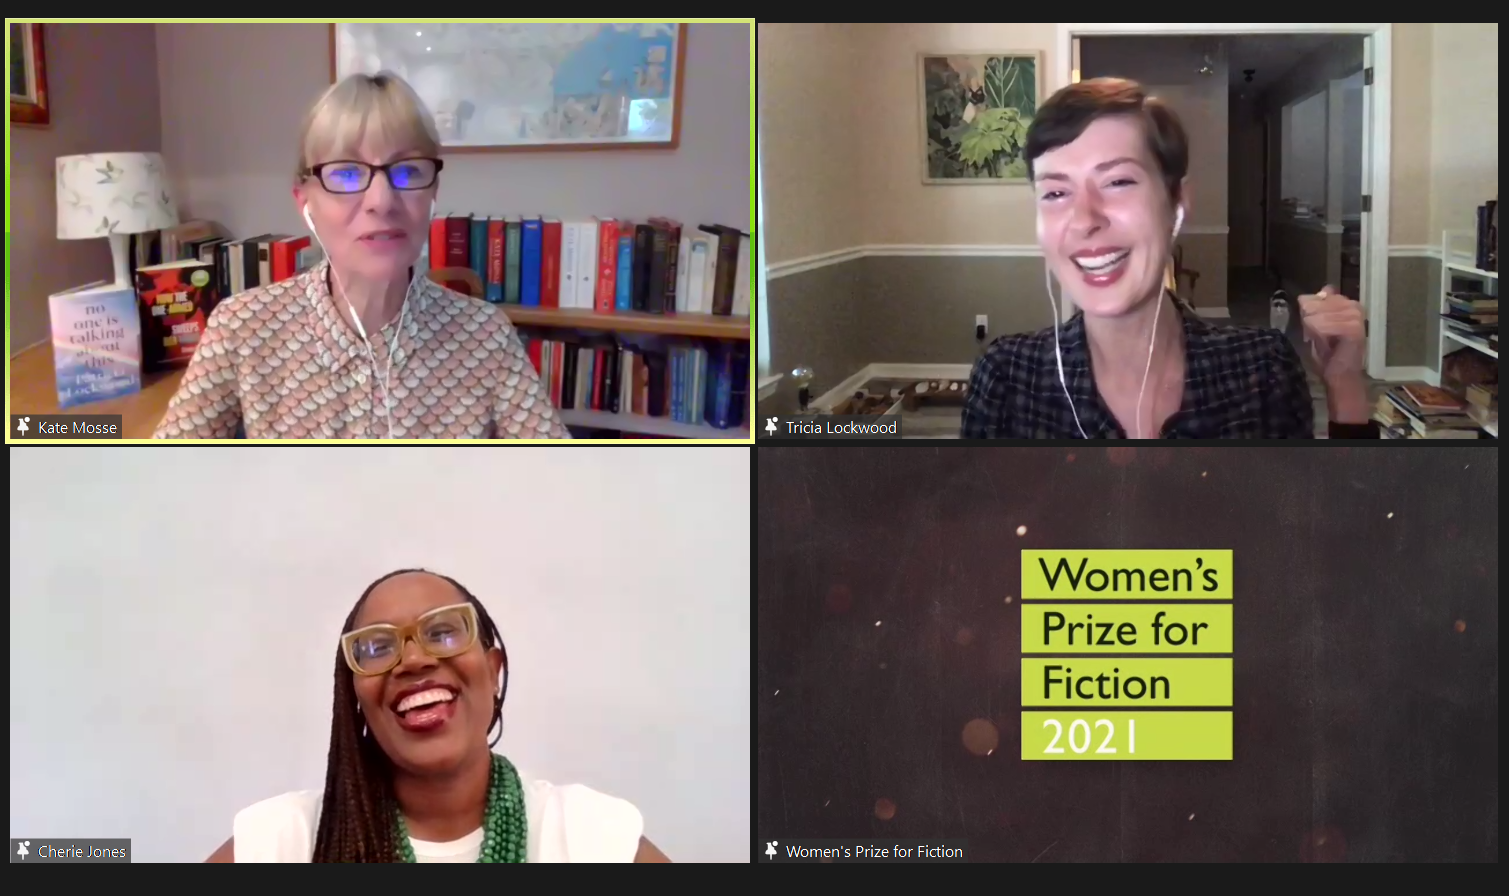 Photo of Zoom with Kate Mosse (Top left), Patricia Lockwood (Top right) and Cherie Jones (Bottom left) at the Women's Prize Virtual Shortlist Festival